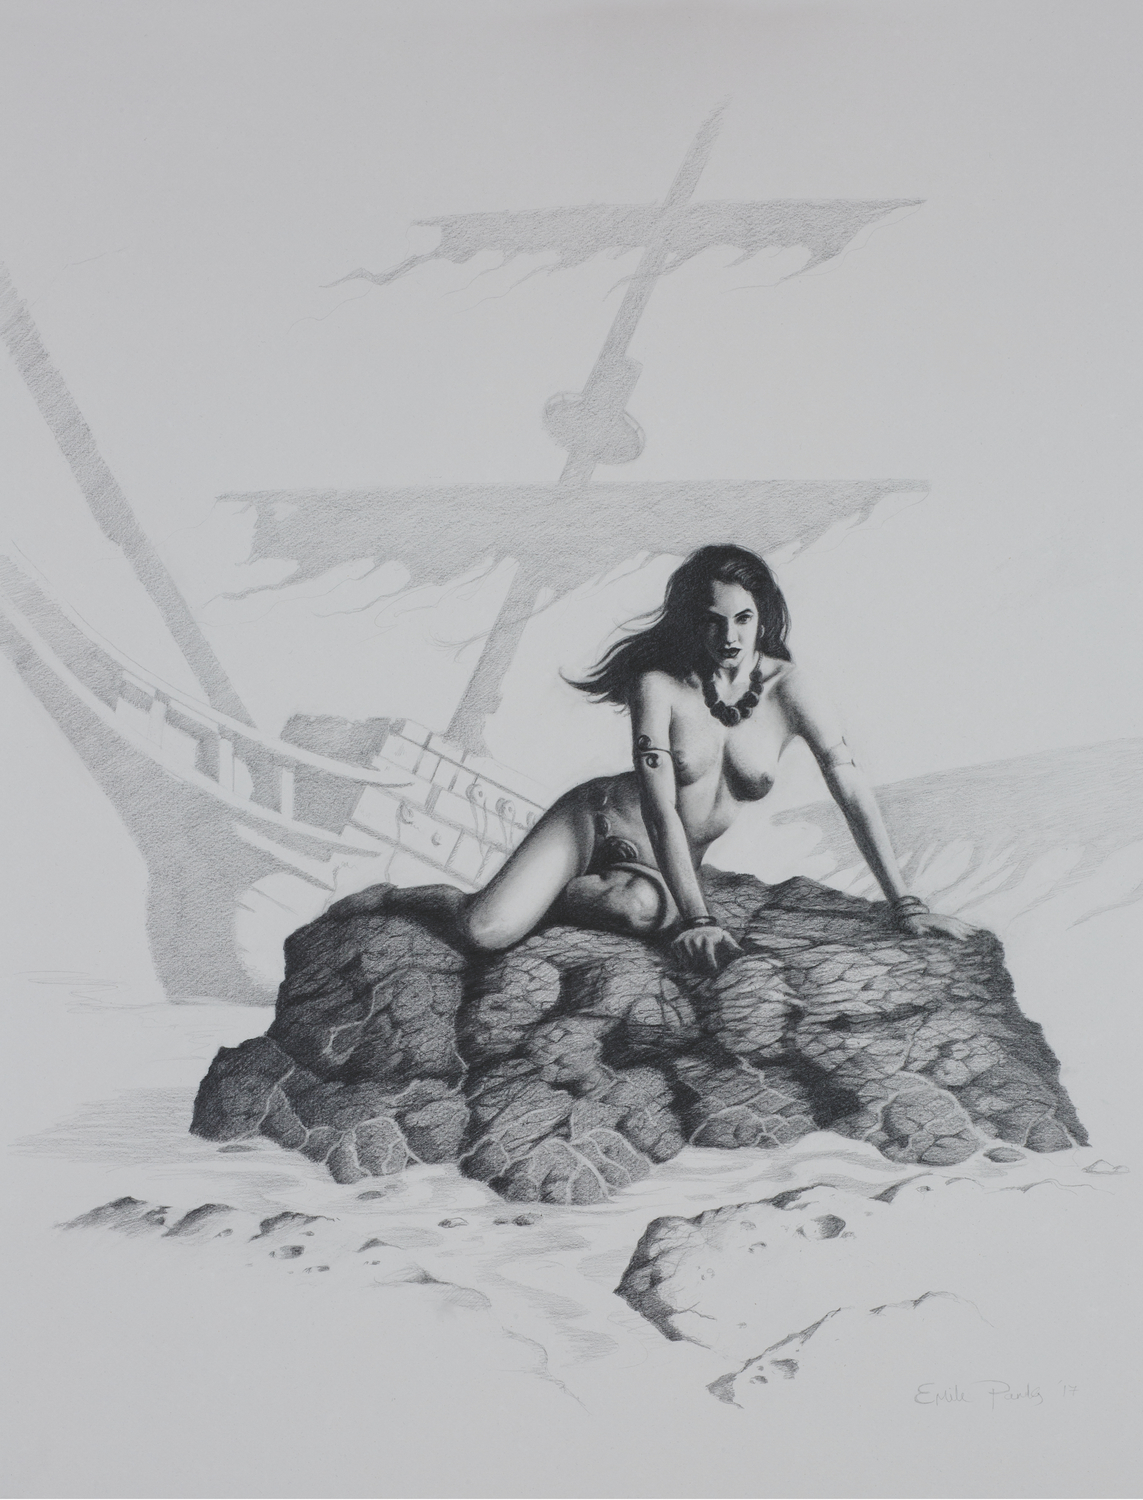 The Siren Artwork by emile parks